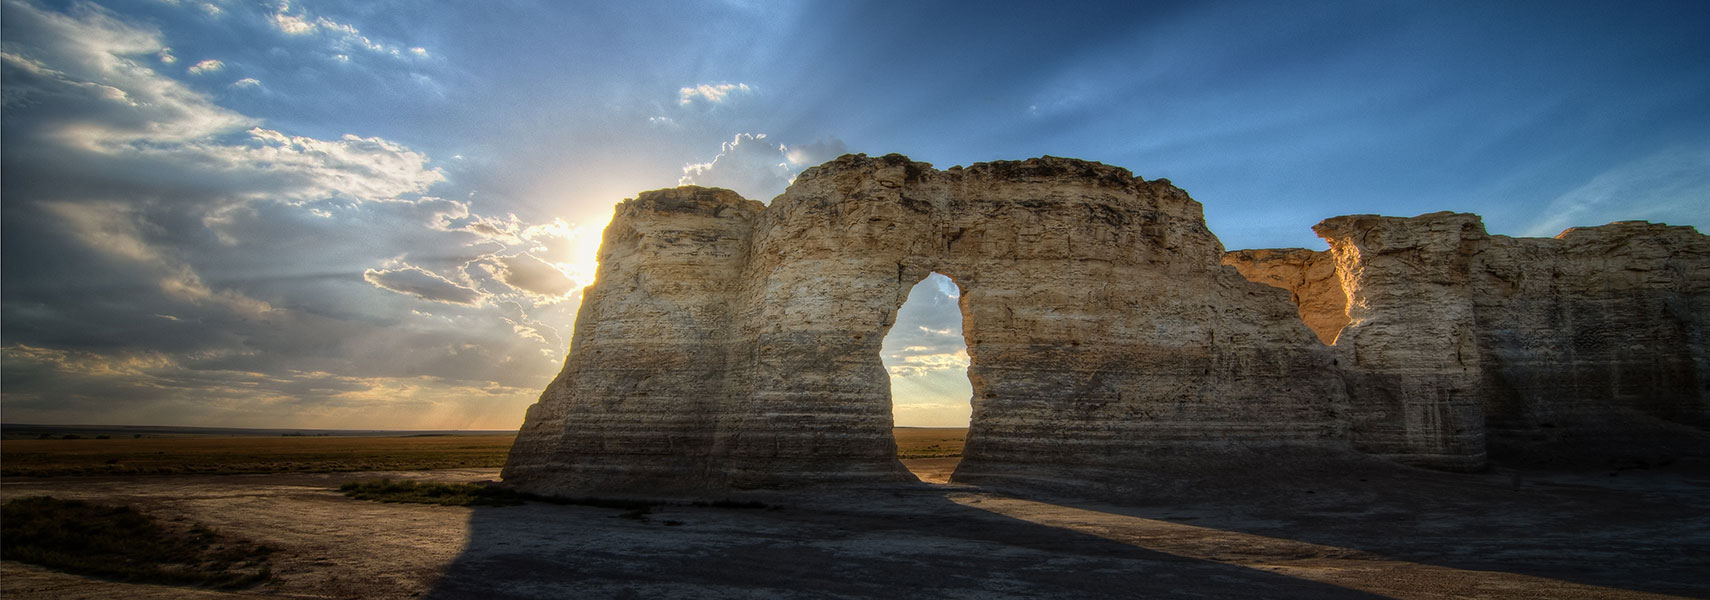 Monument Rocks in Gove County, Kansas